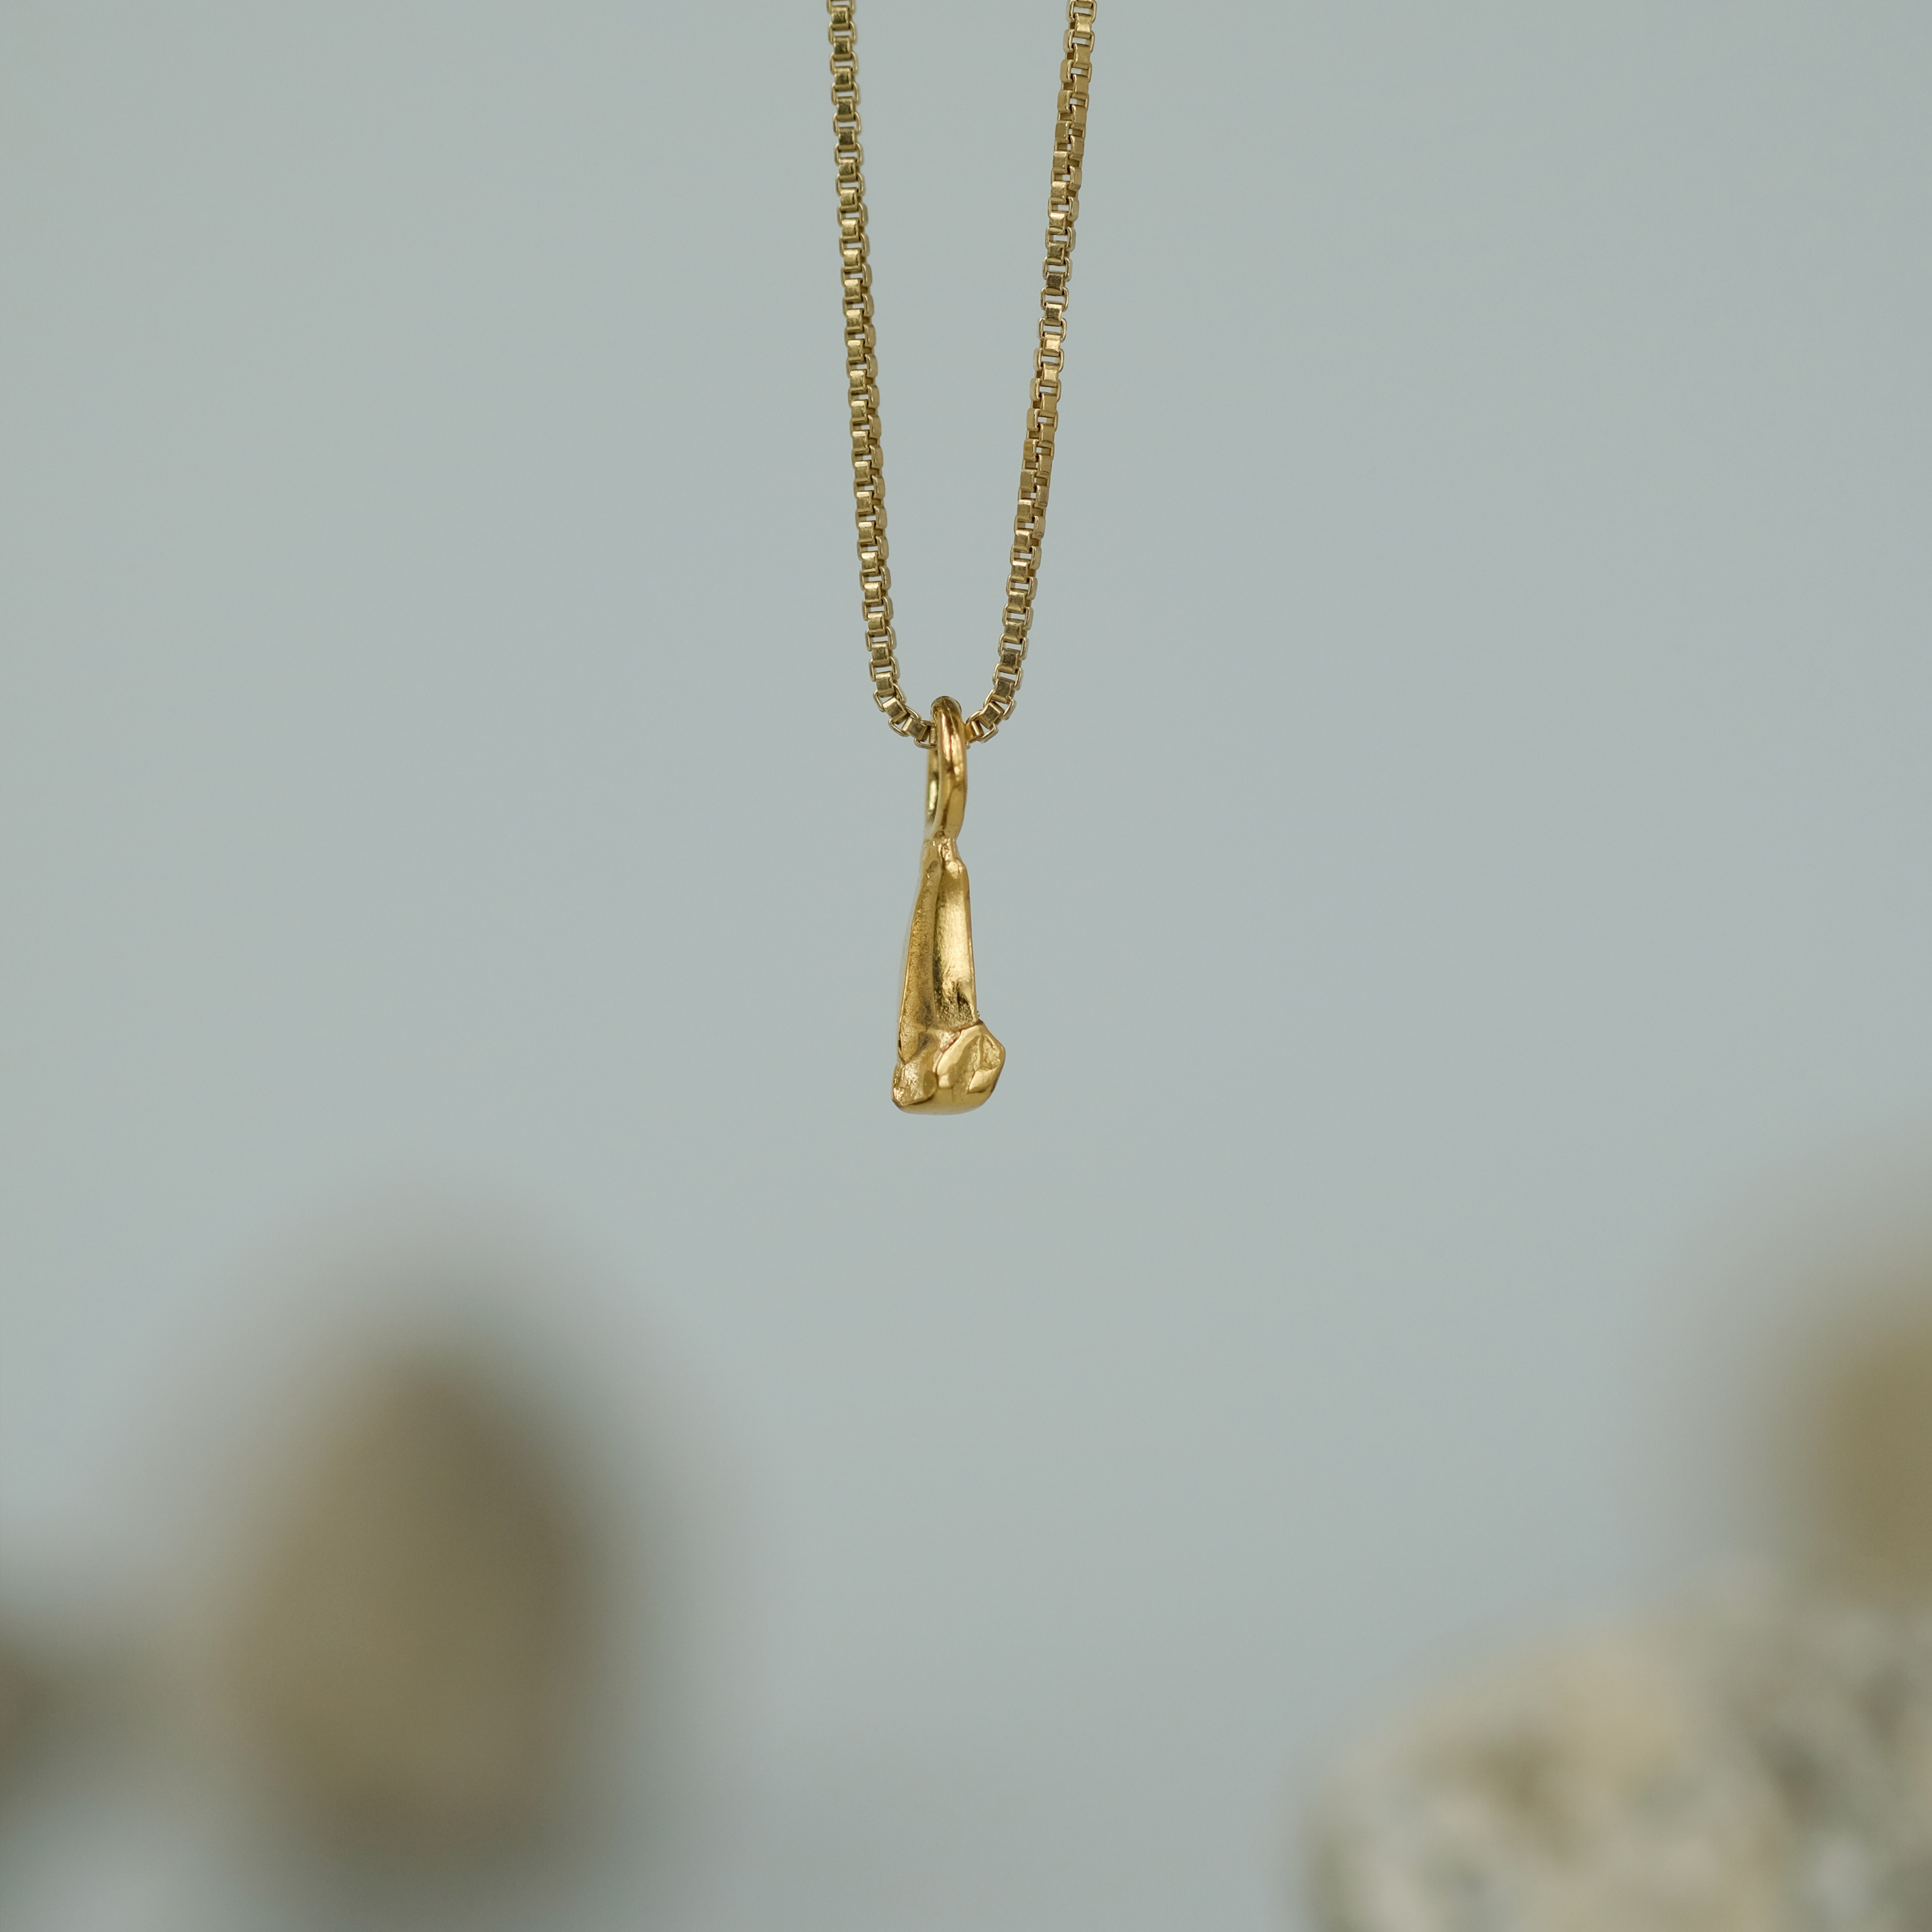 Sulfur Gold Necklace